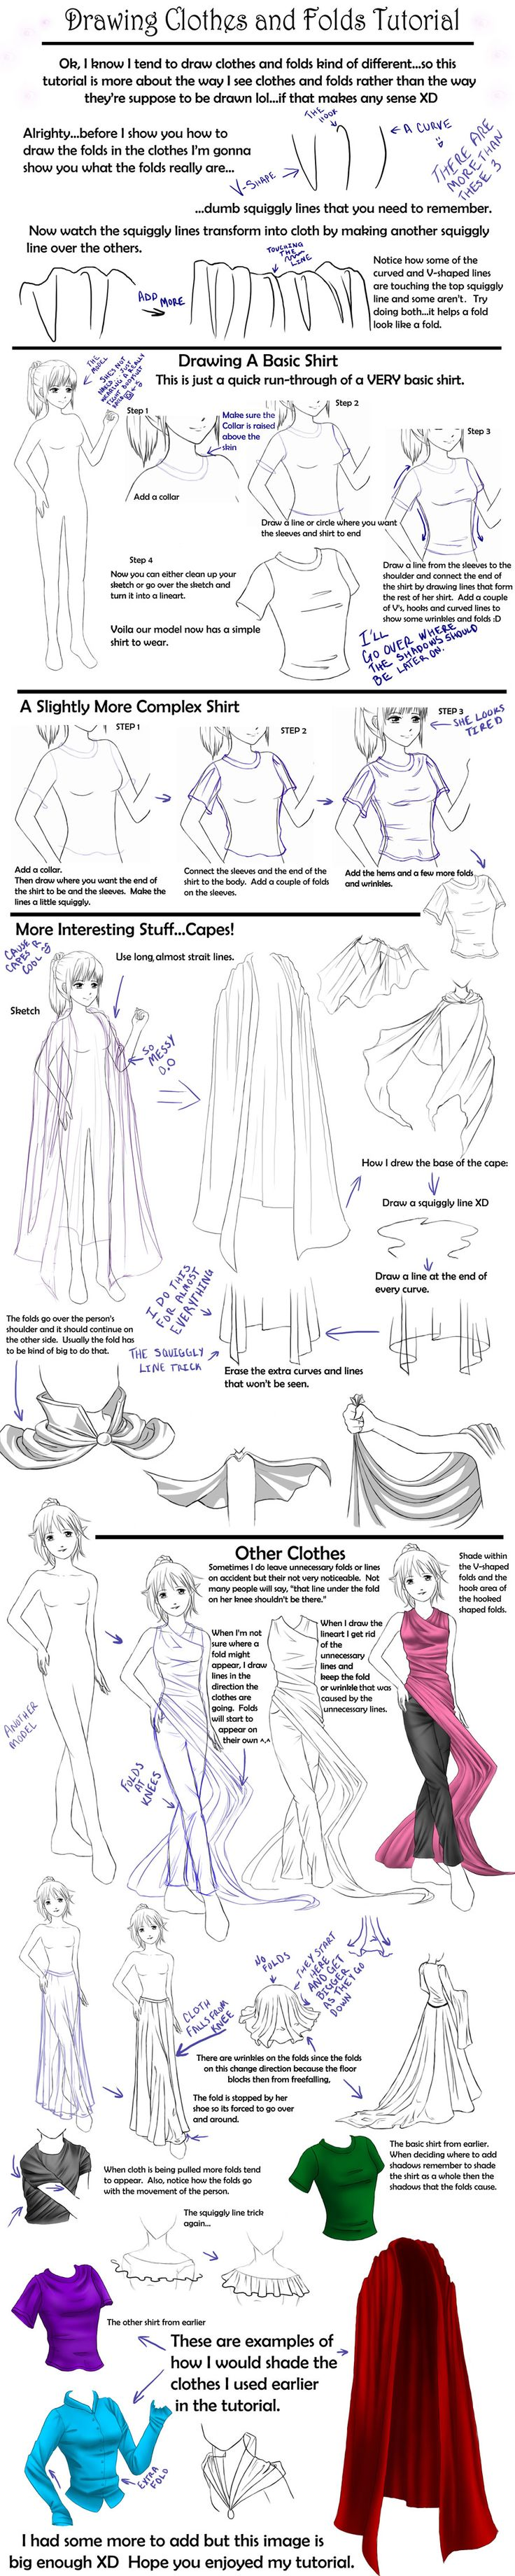 How to draw Clothes tutorial,Manga clothes, Anime Clothes, how to draw fabric, drawing folds, kawaii, girl, Japanese, anime, manga tut